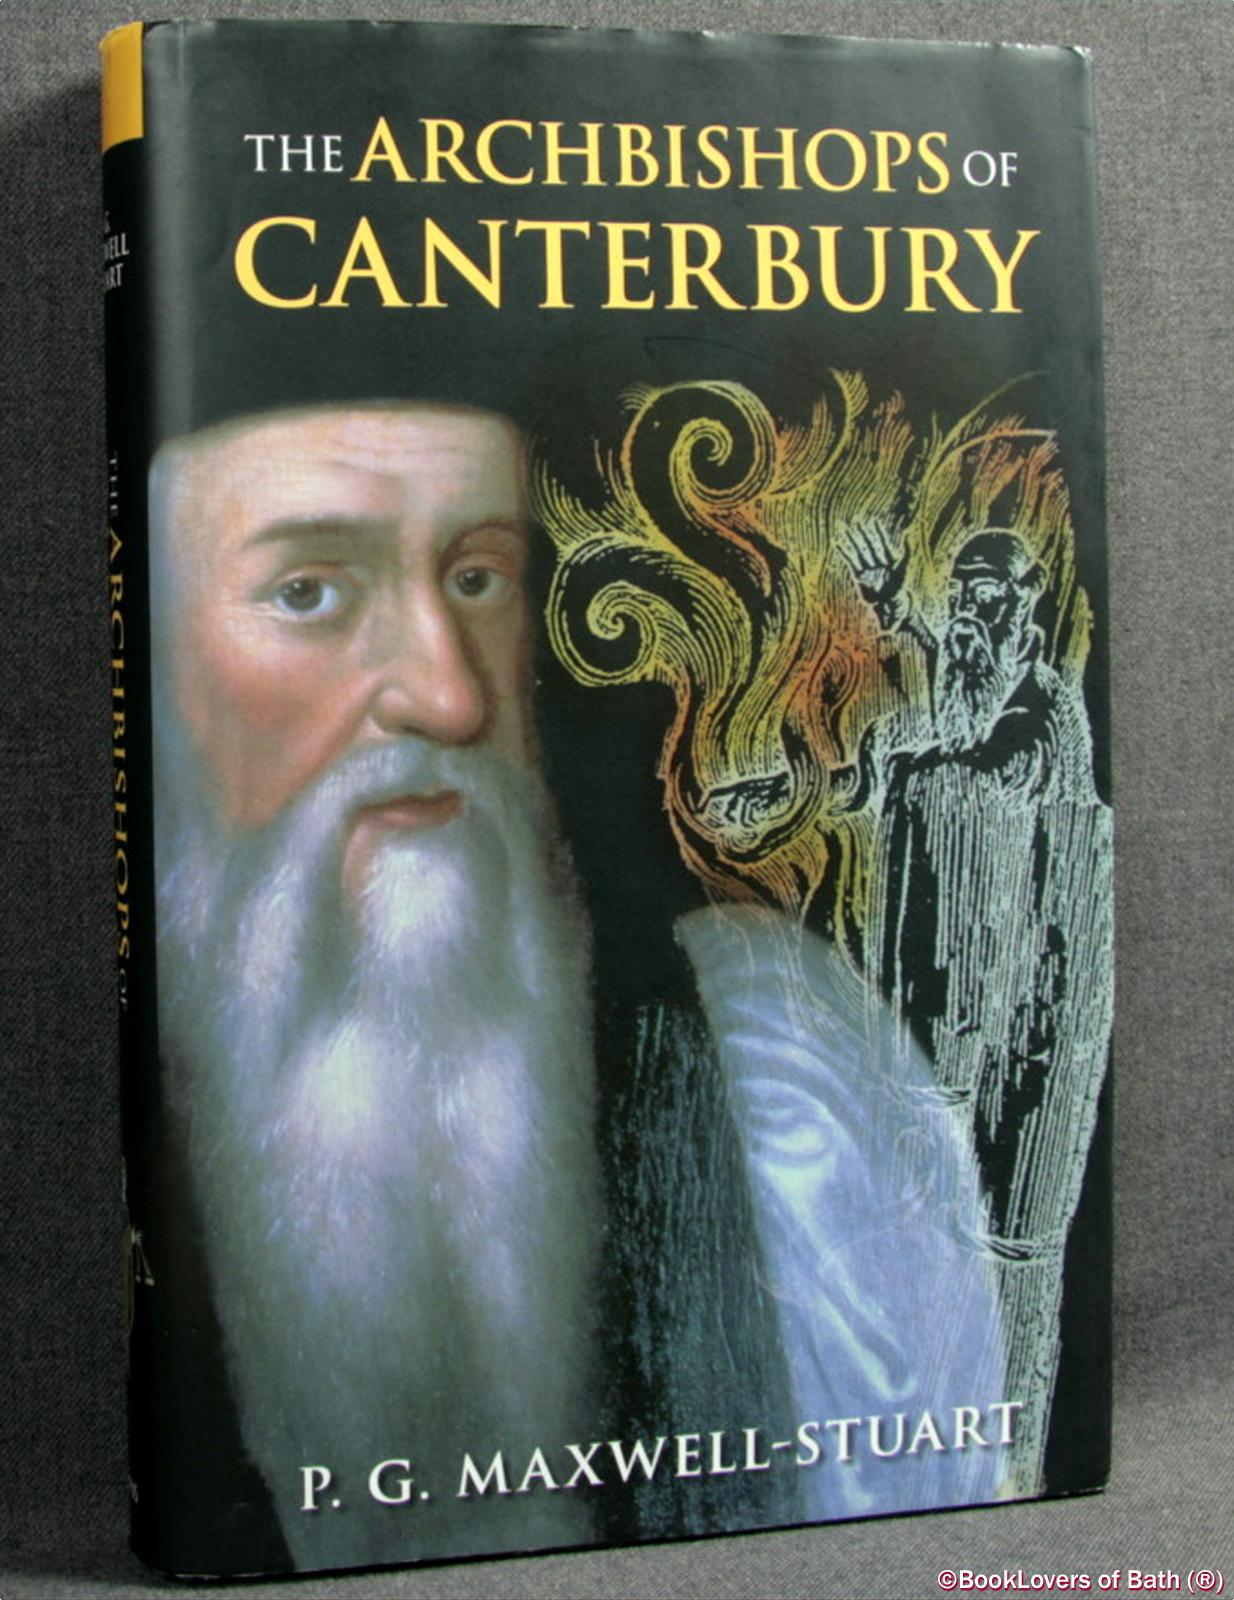 The Archbishops of Canterbury: A History - P. G. Maxwell-Stuart